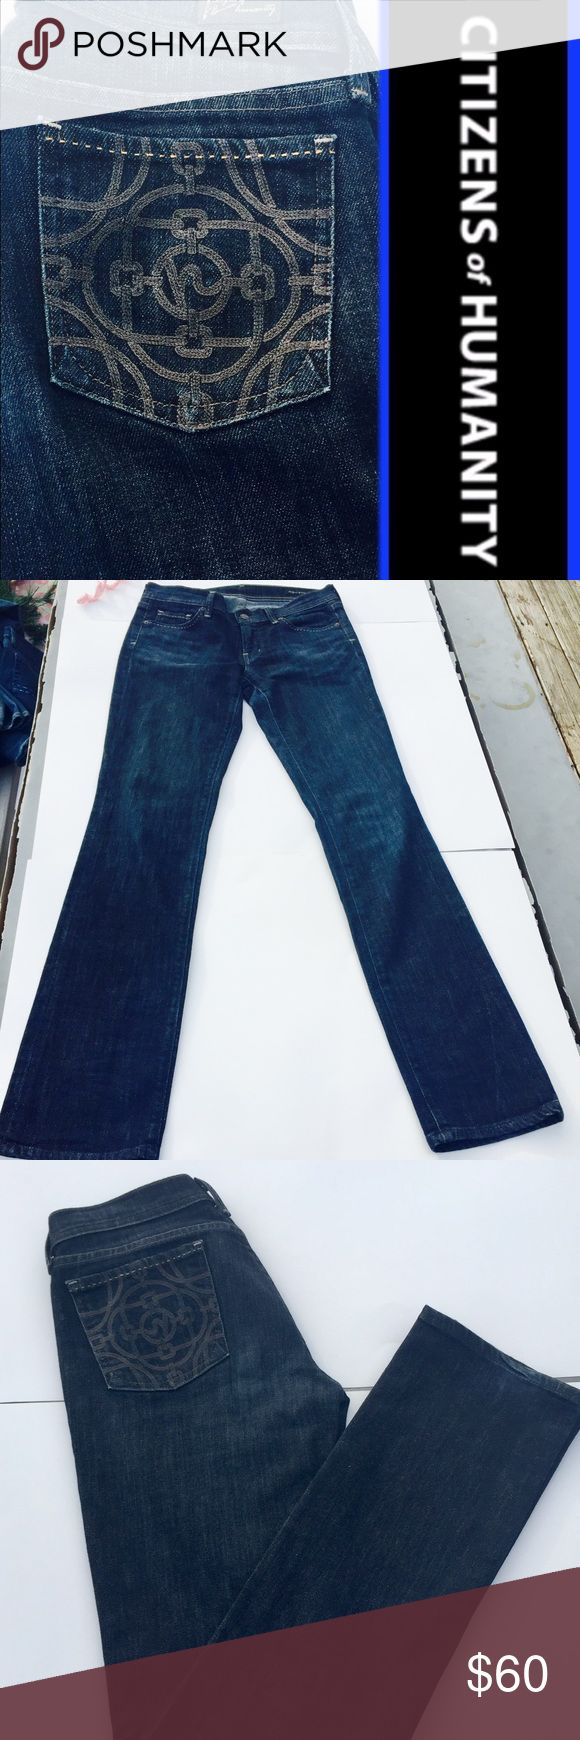 Citizens of humanity jeans Citizens of humanity AVA straight leg EUC size 6 /28 very flattering the wash and the fit makes your thighs look slimmer they are in between skinny and boot cut which is perfect for those with big thighs. Medium wash made in lightweight denim subtle fading and whiskering  gives it vintage appeal.     Shop and feel good about it 😁. Part of the money u spend goes to Purple Heart Foundation 💜 Citizens of Humanity Jeans Straight Leg